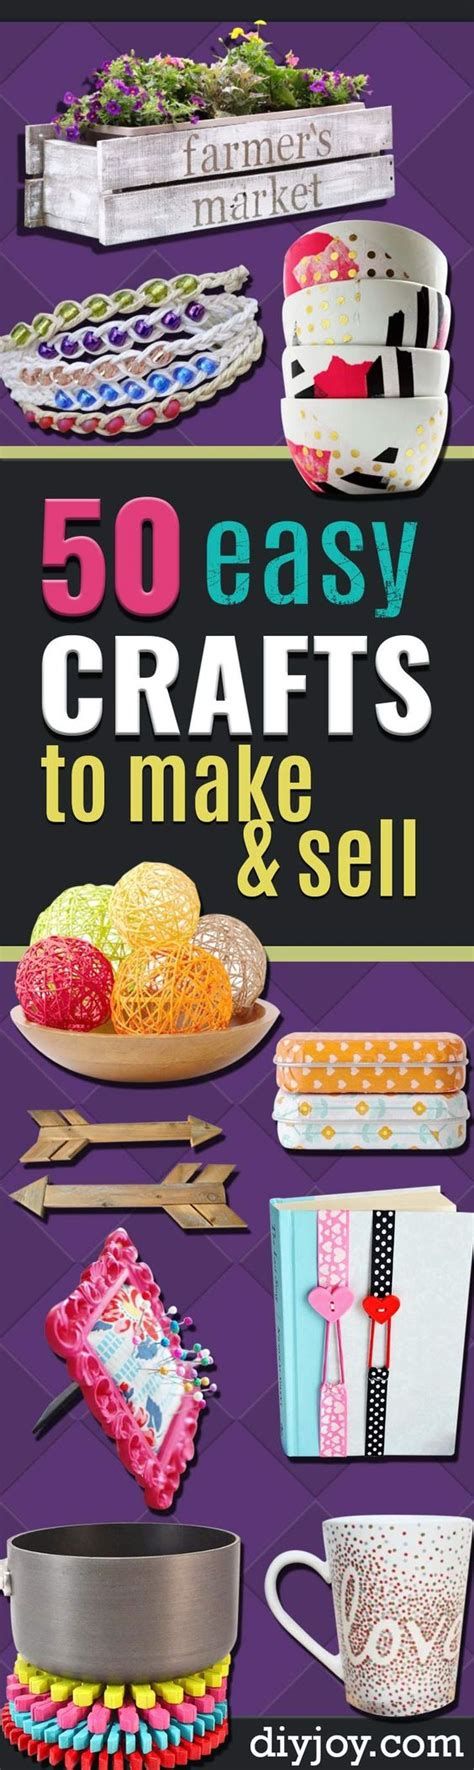 easy crafts    sell homemade craft fairs